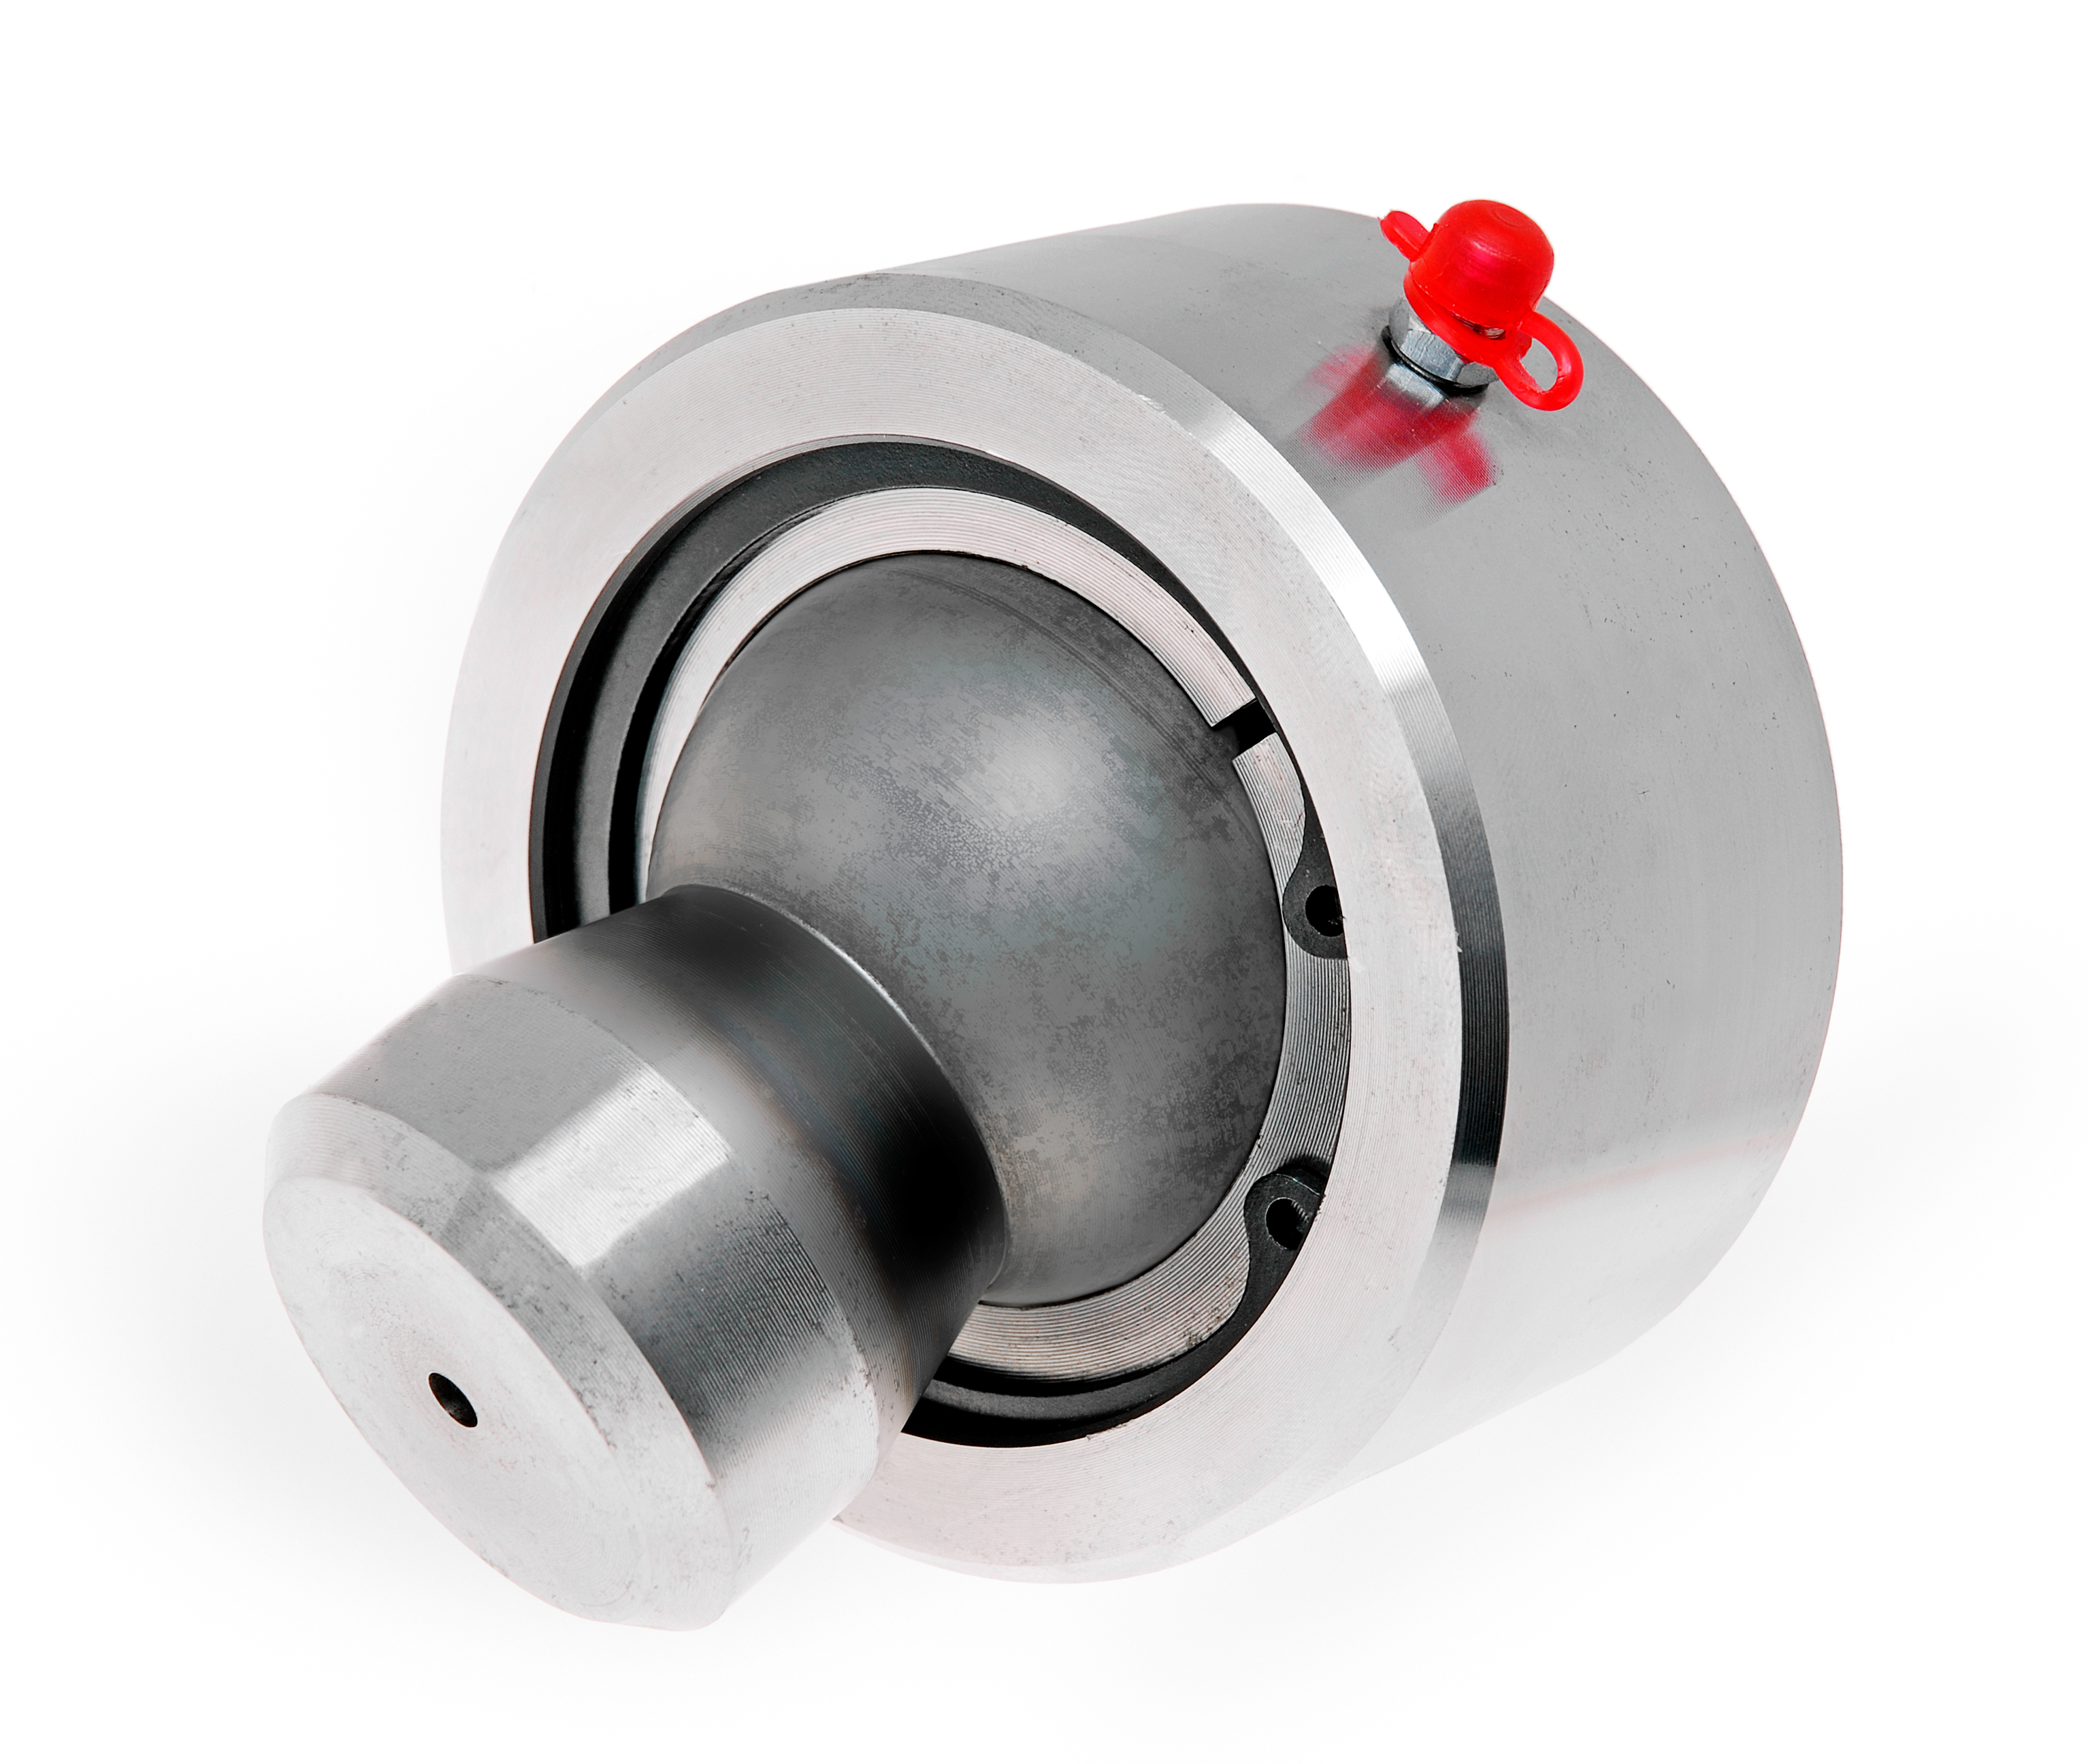 Ball Joint End - Weldable